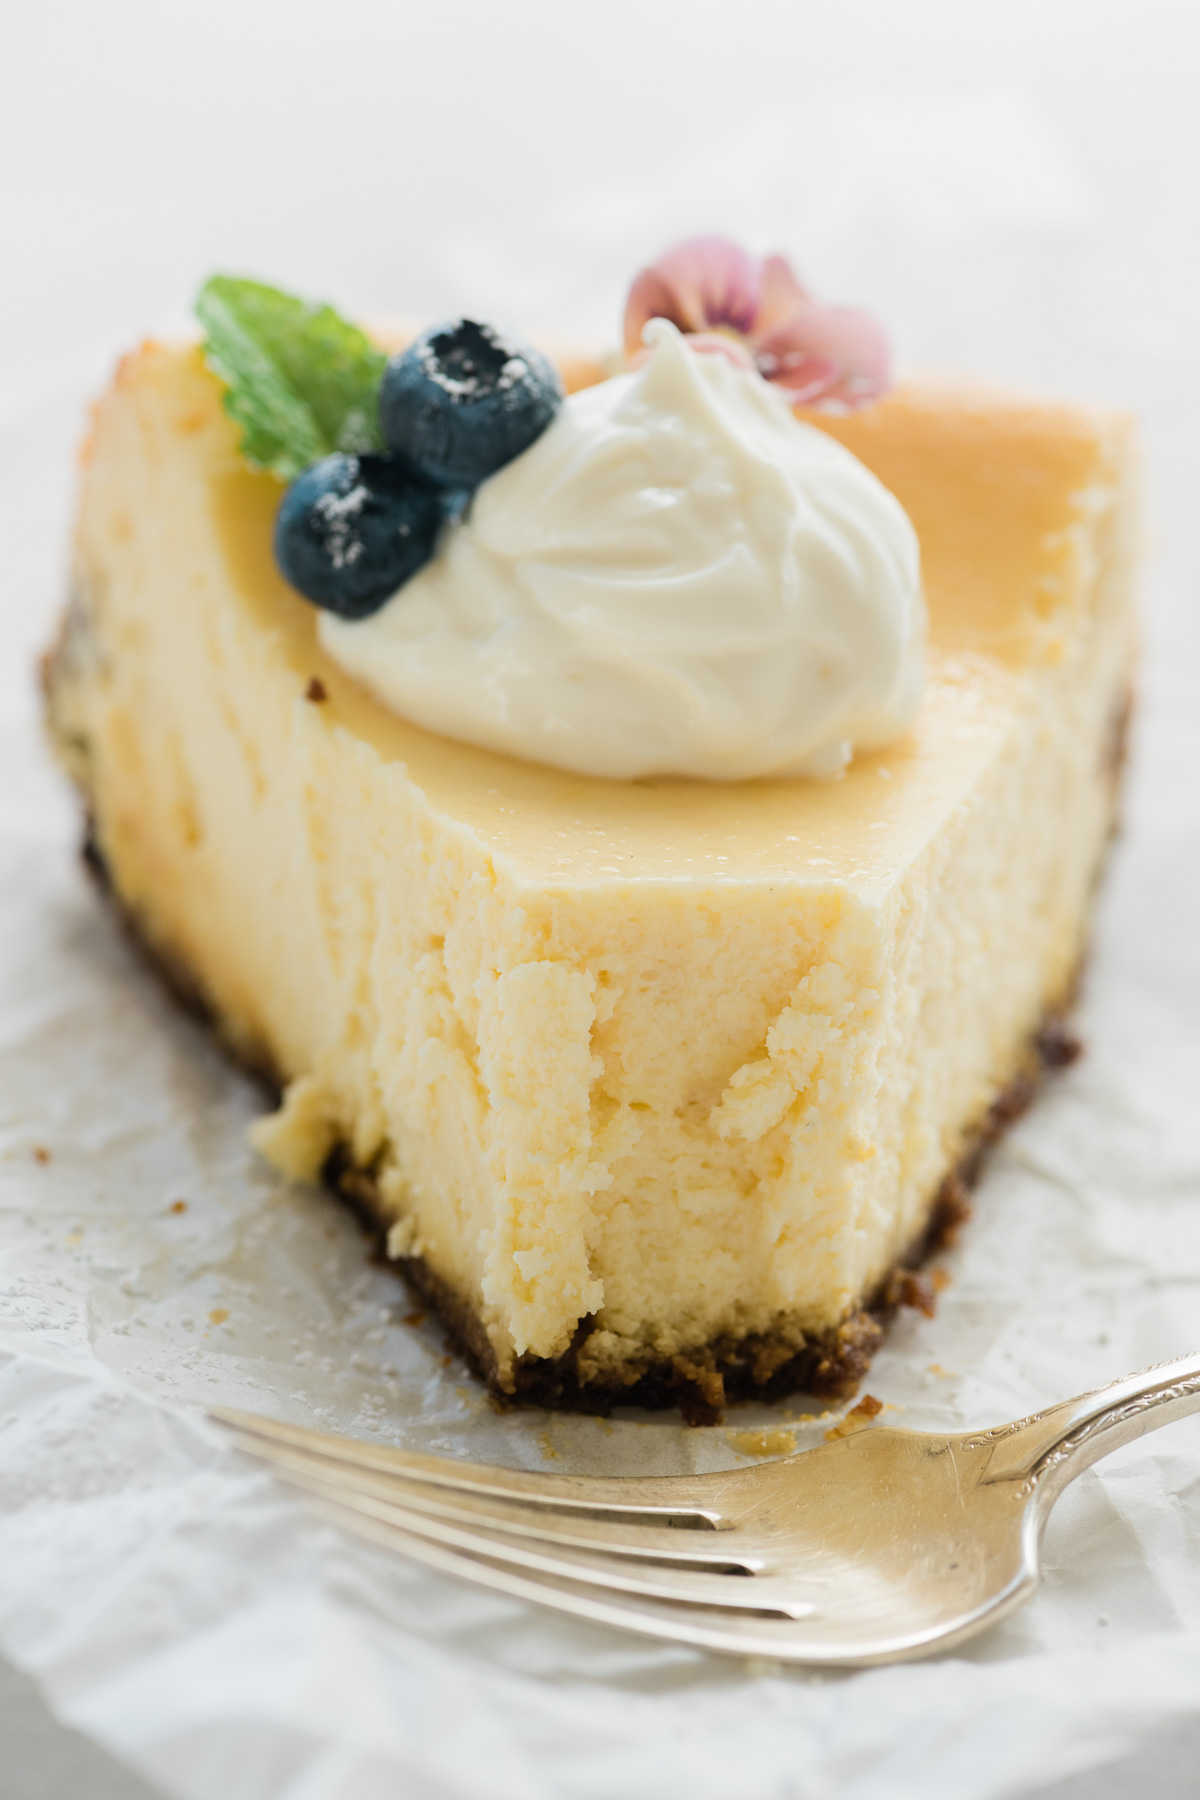 A slice of lemon cheesecake topped with whipped yogurt